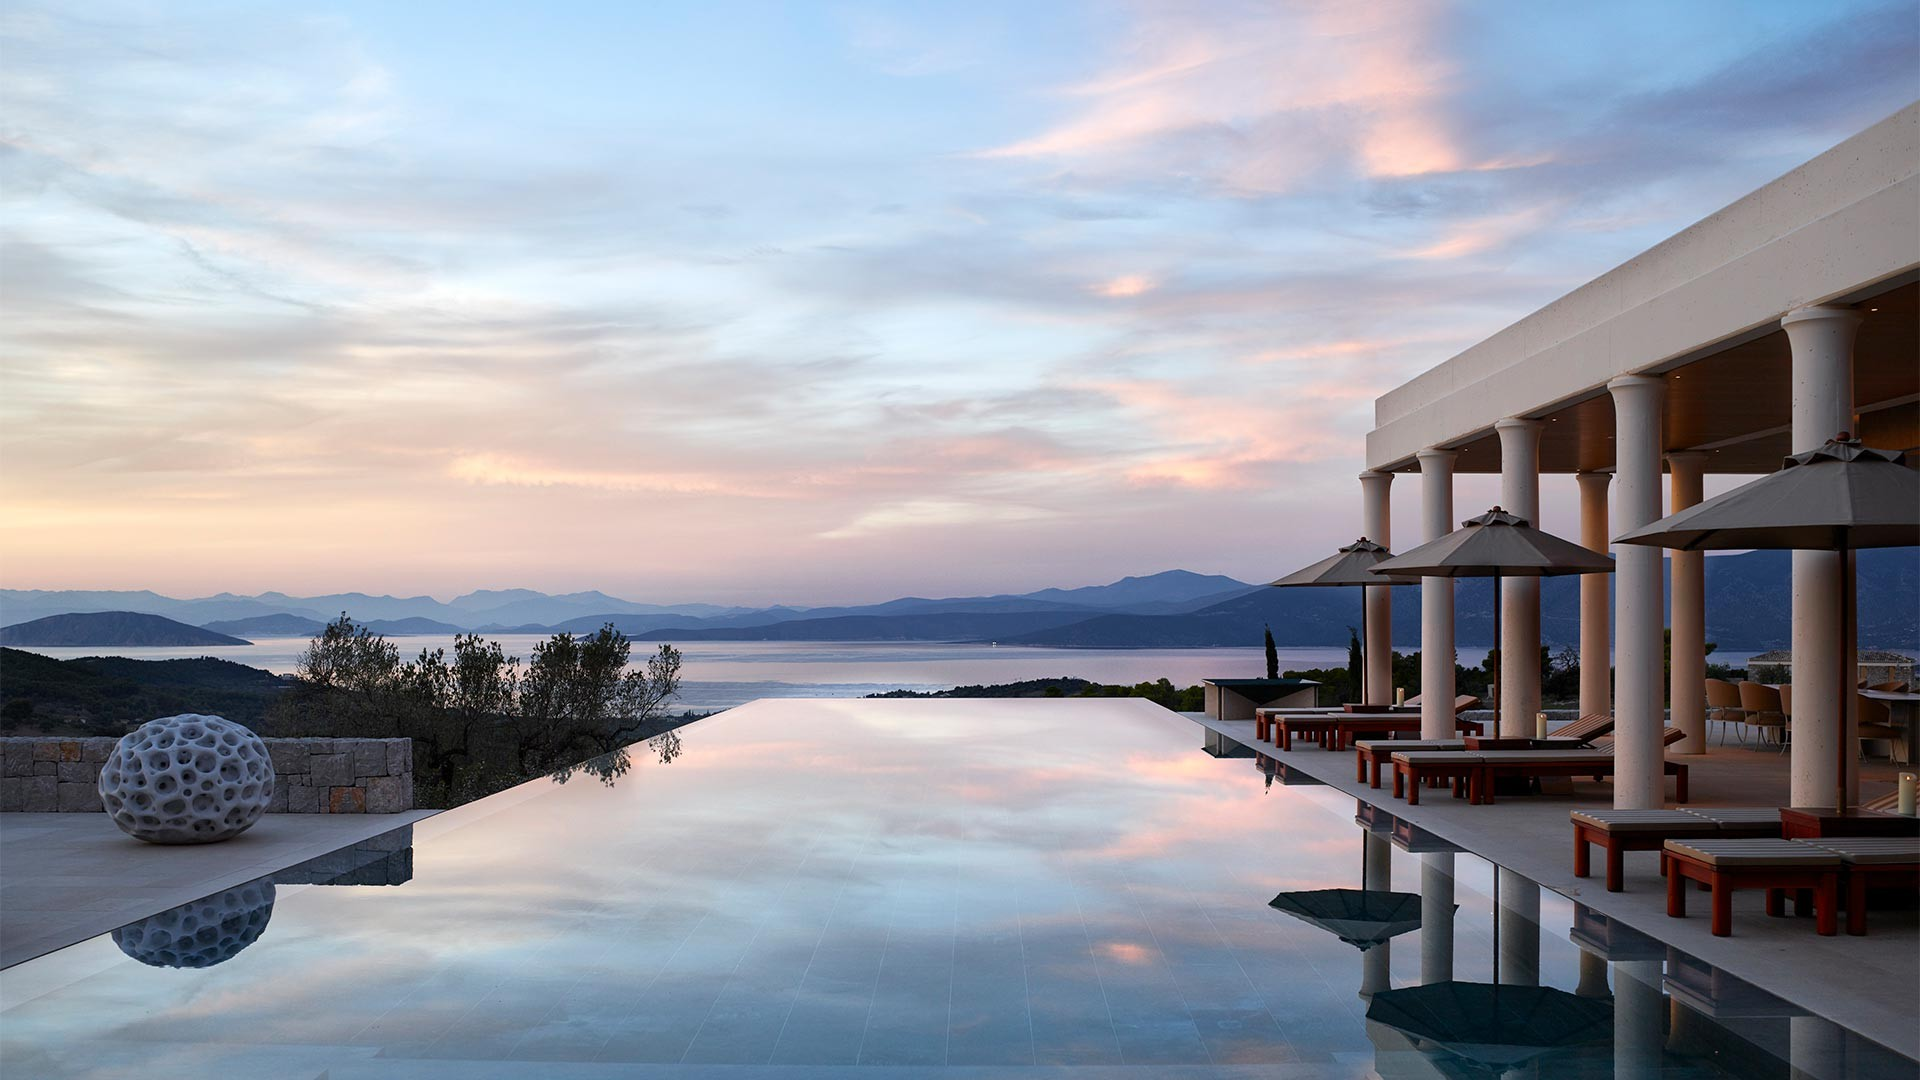 Infinity pool at Amanzoe luxury resort